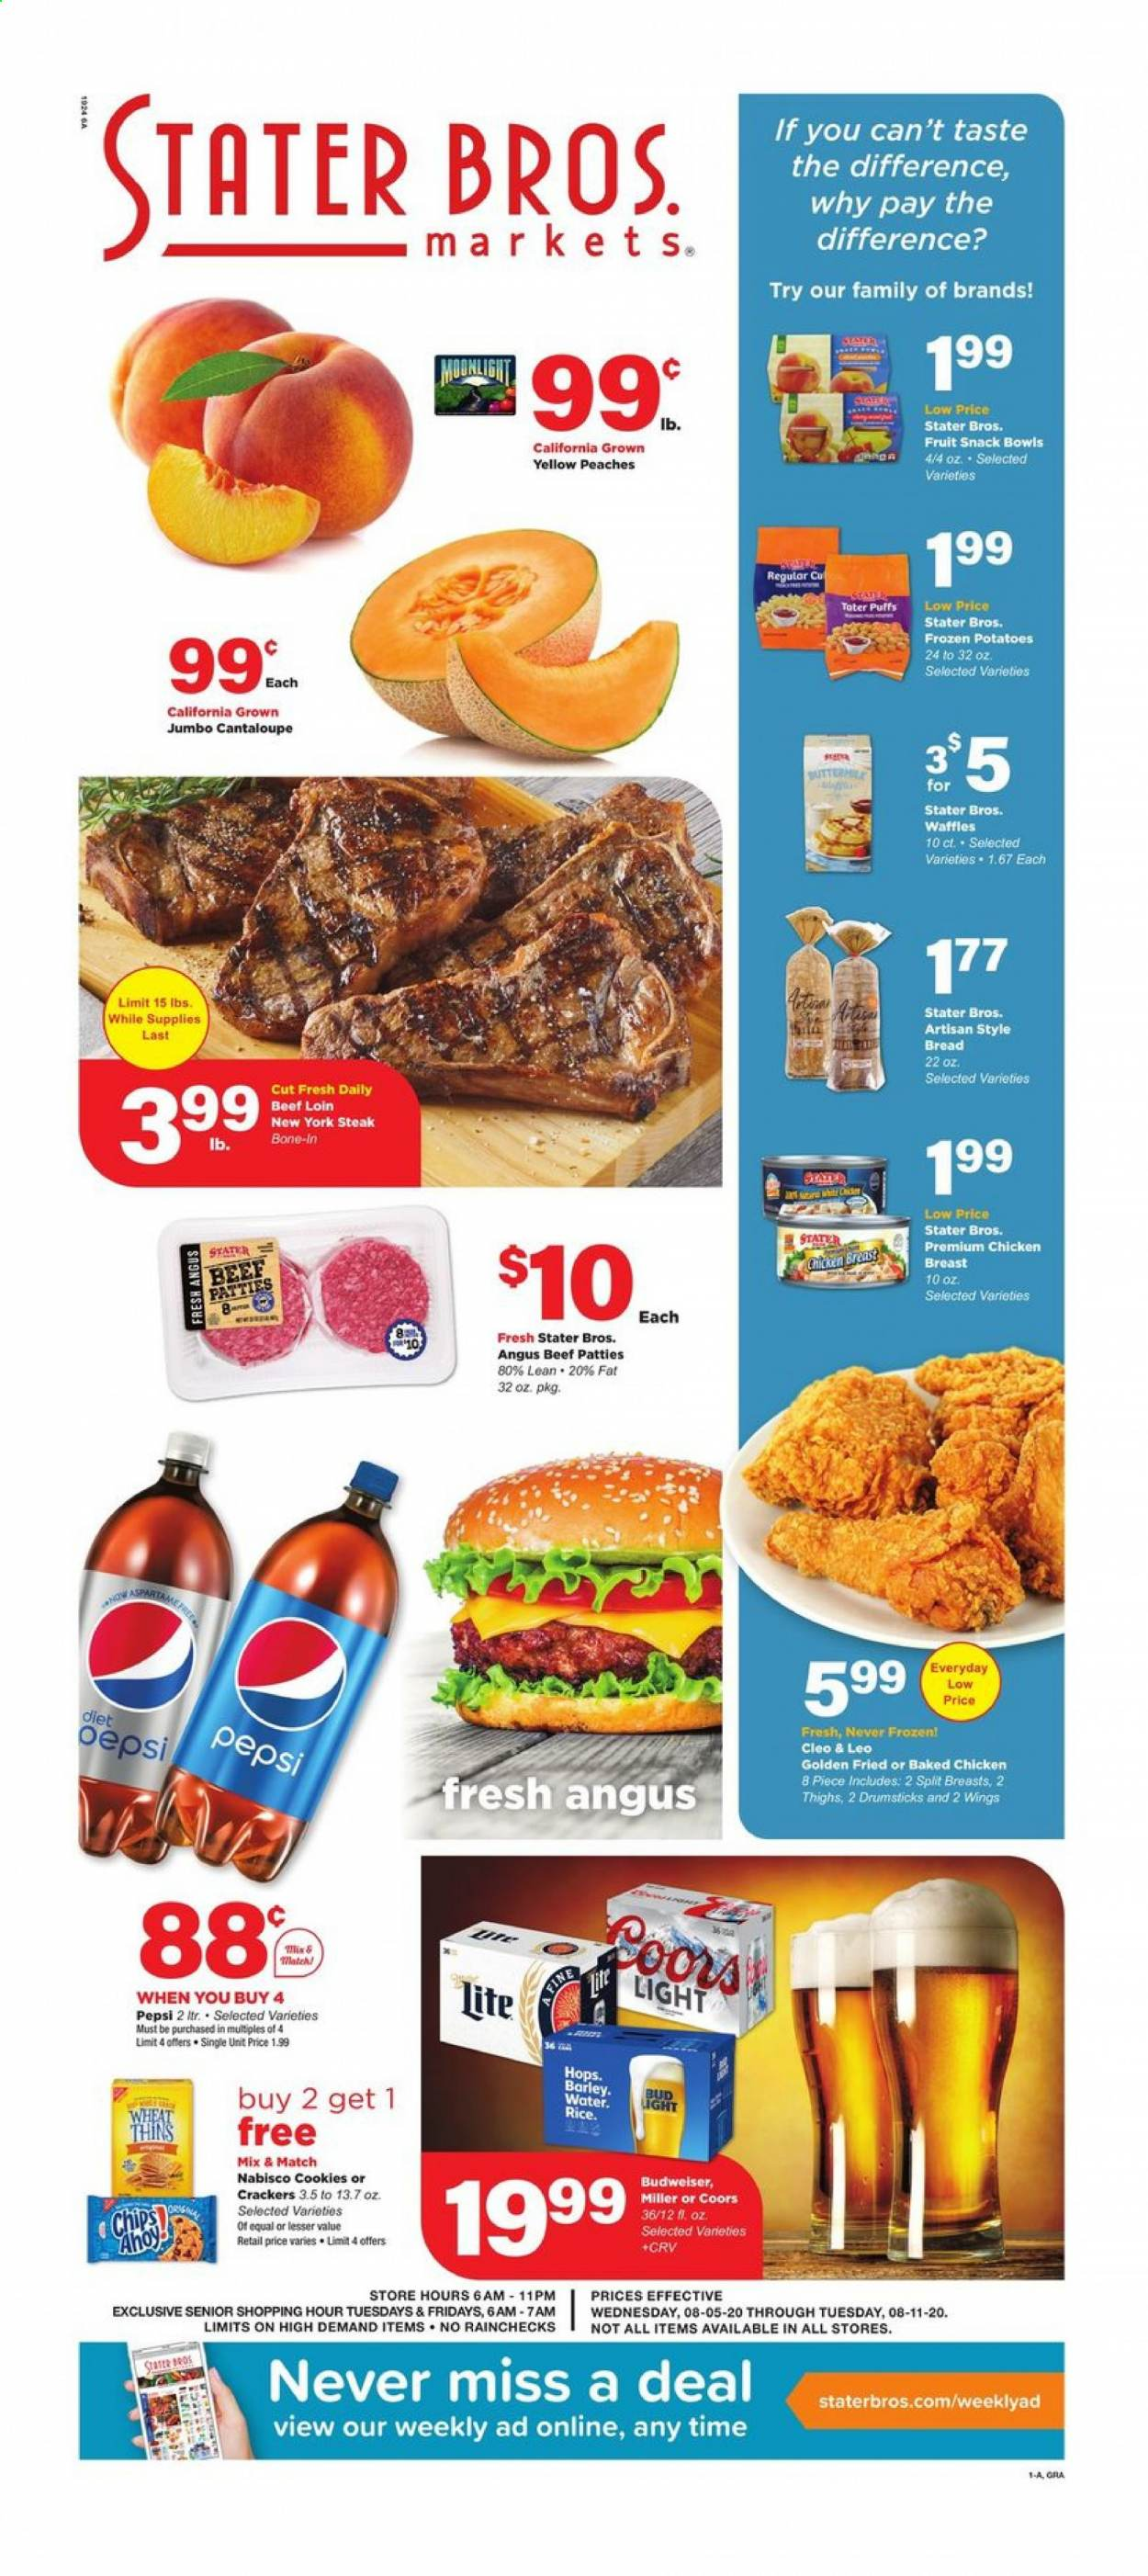 Stater Bros. Flyer - 08.05.2020 - 08.11.2020 - Sales products - Budweiser, Coors, cantaloupe, bread, Puffs, waffles, cookies, crackers, fruit snacks, snack, Thins, Pepsi, apple cider, beer, Bud Light, Miller, chicken, beef meat, steak, water. Page 1.